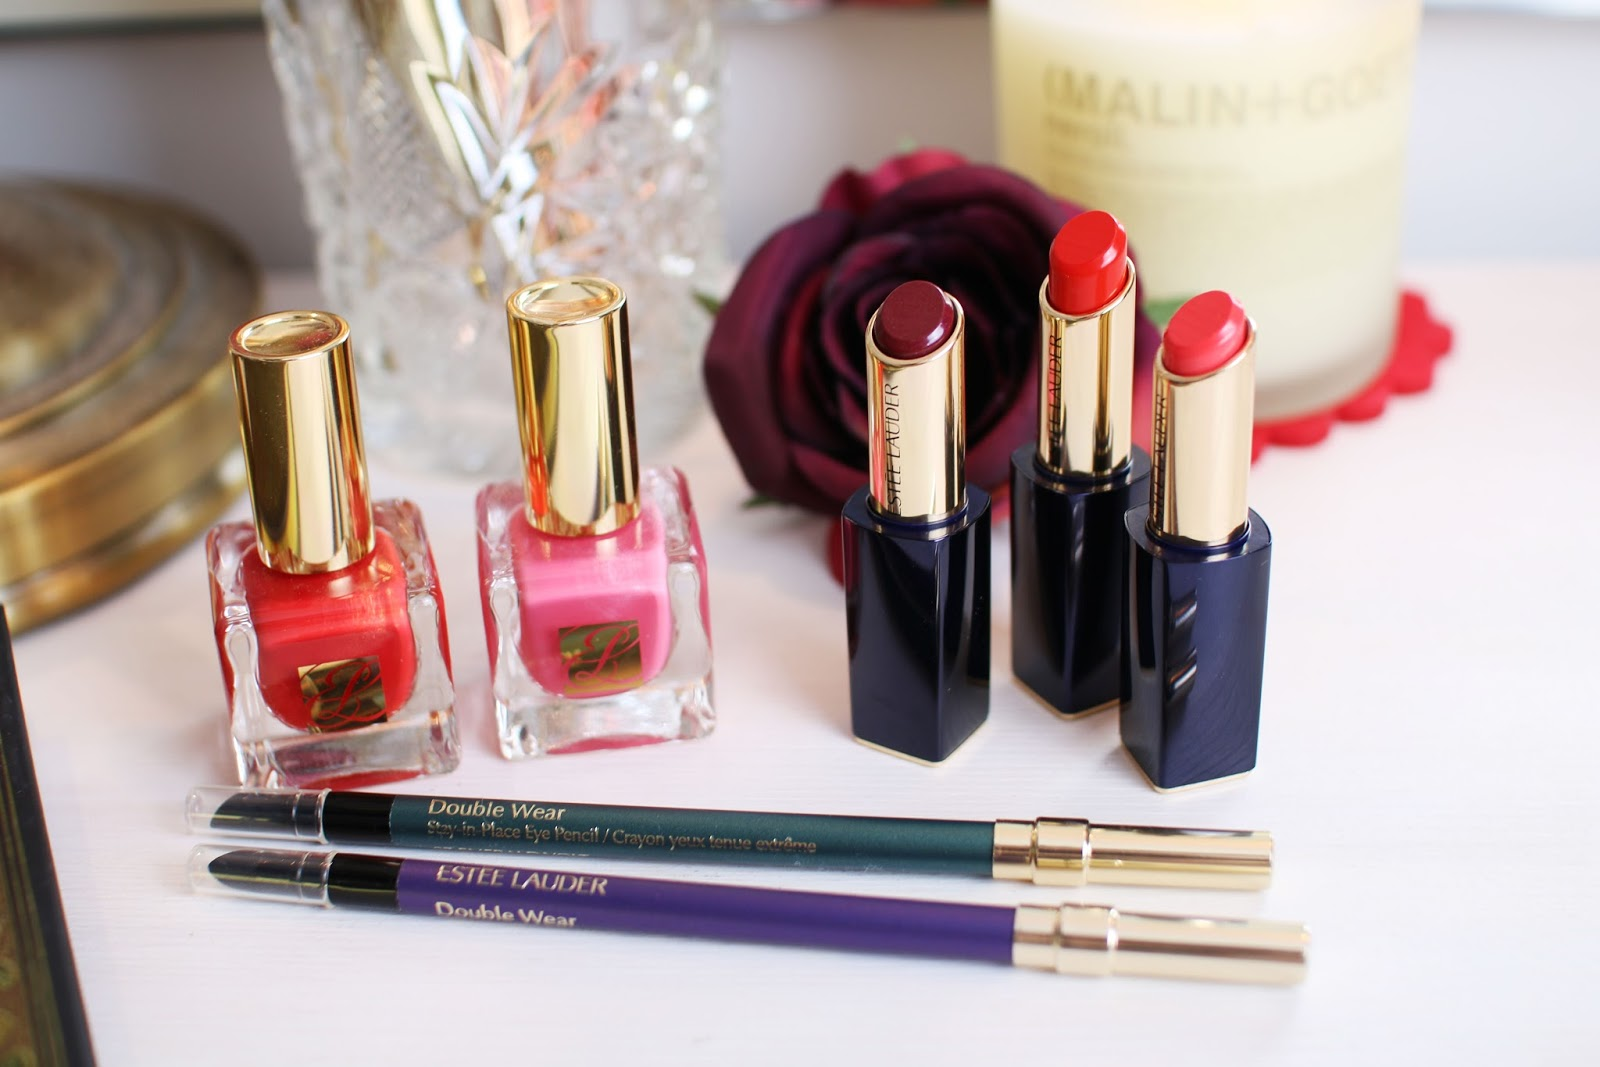 Beautifying with Estee Lauder: Nails, Lips and Eyes - Inthefrow